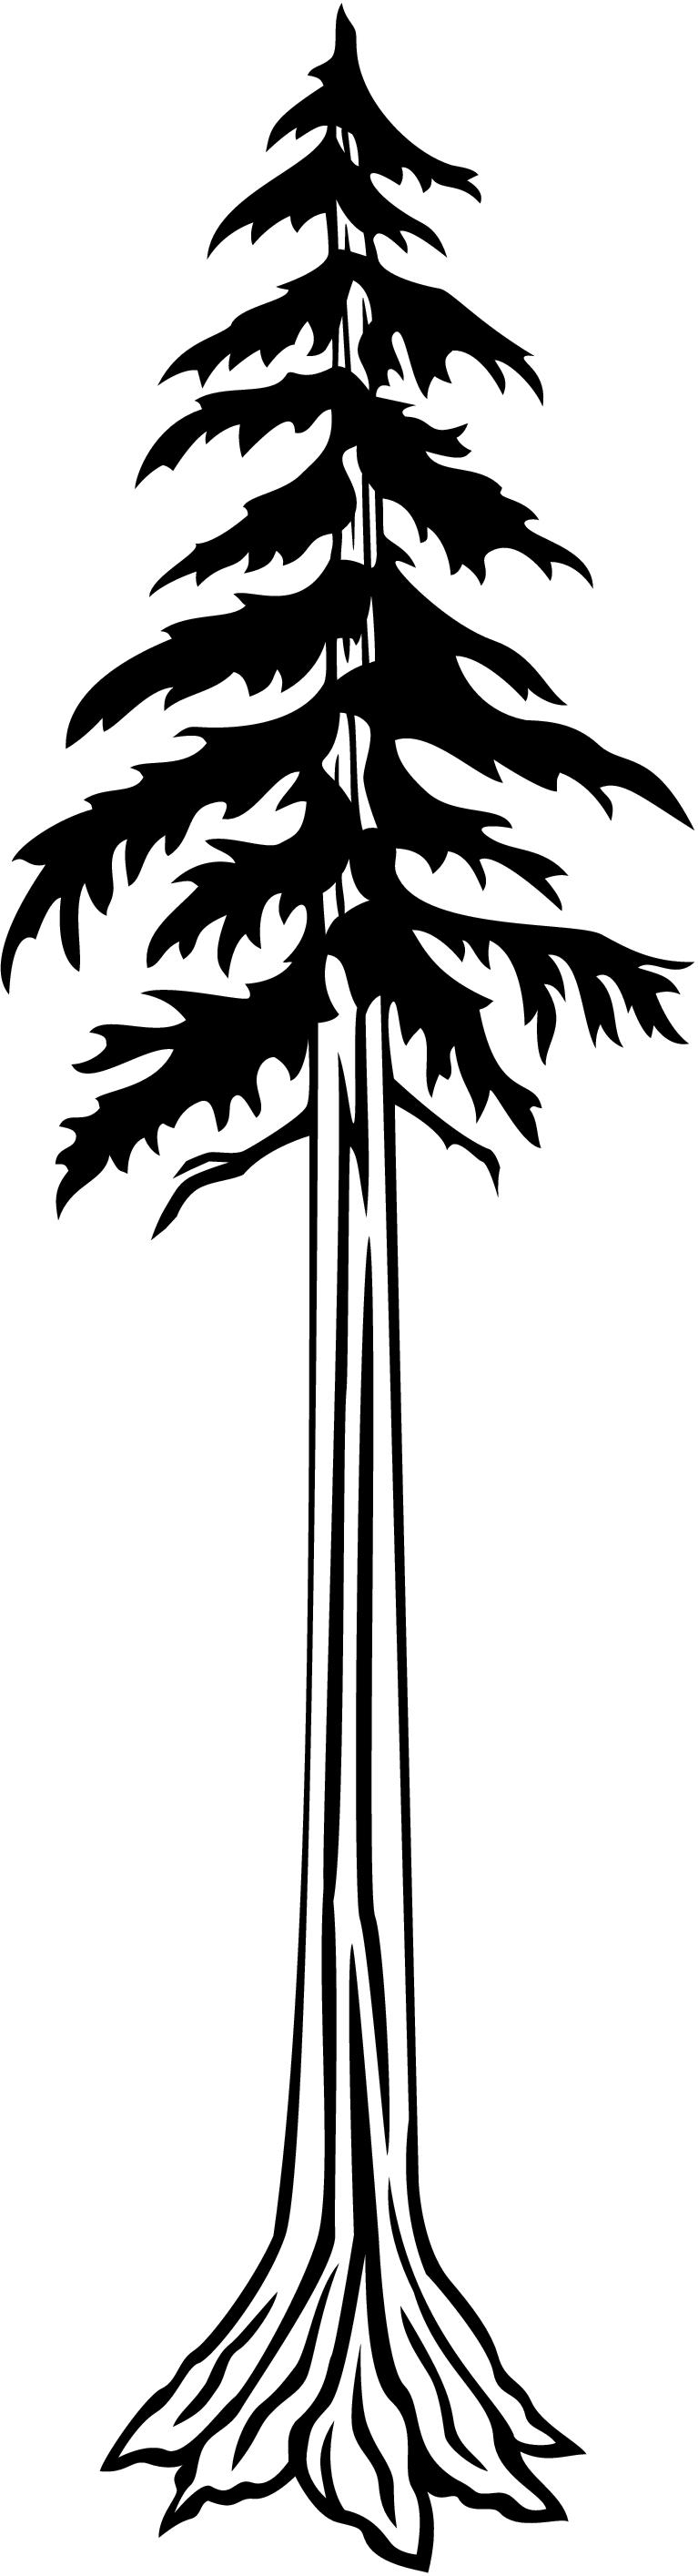 About-; Tree In A Circle Large clip art ...